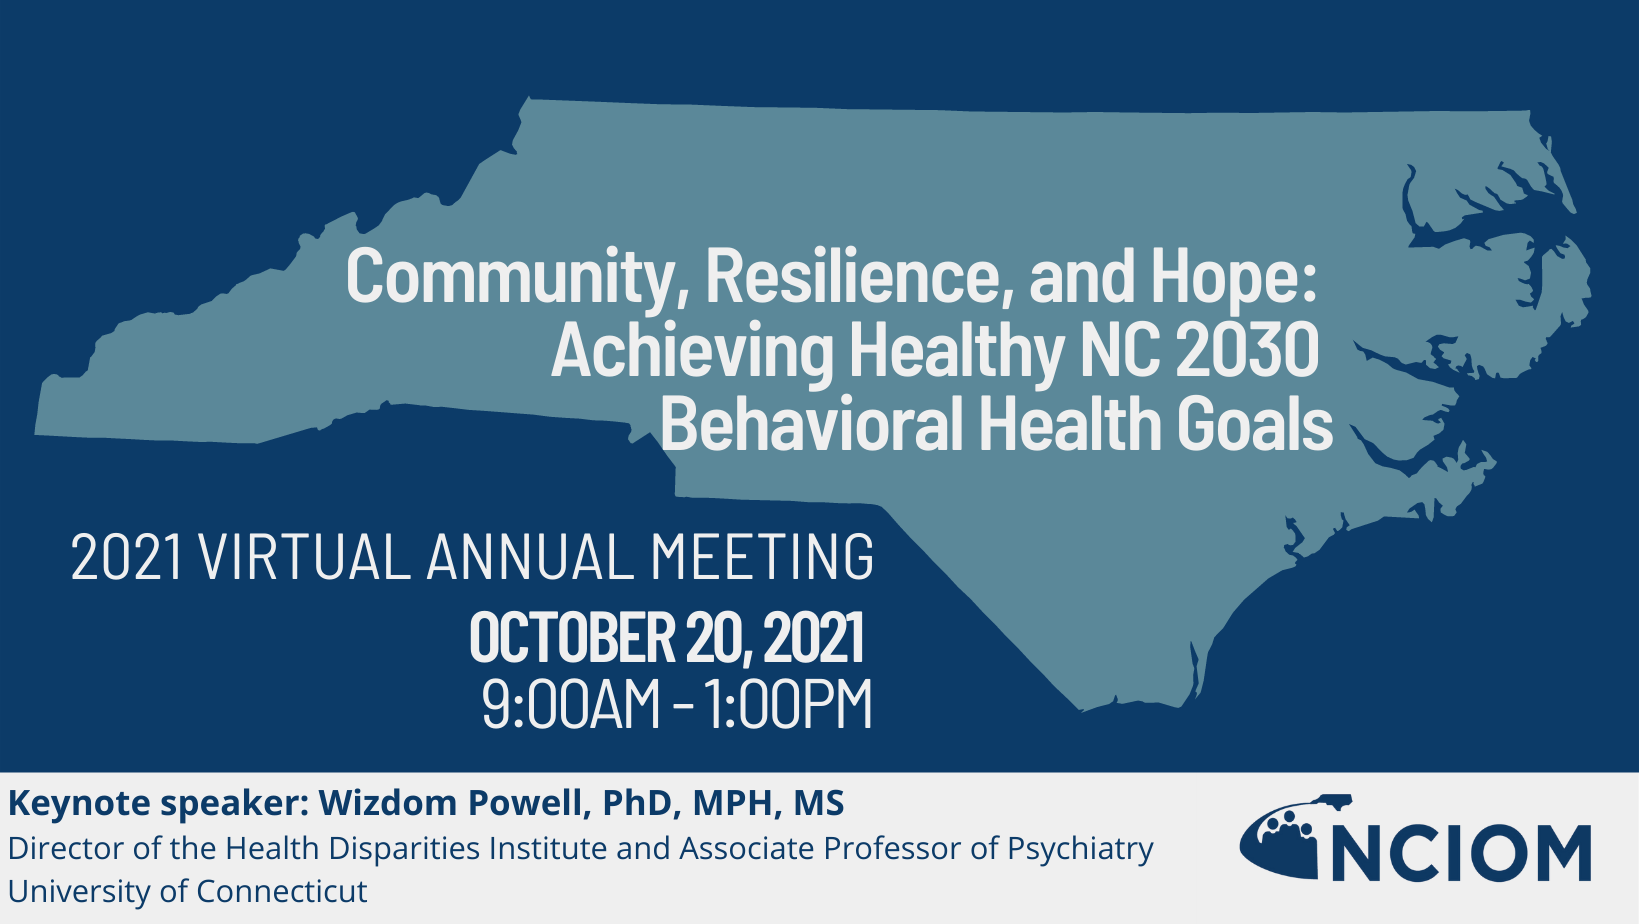 save the date for the 2021 annual meeting